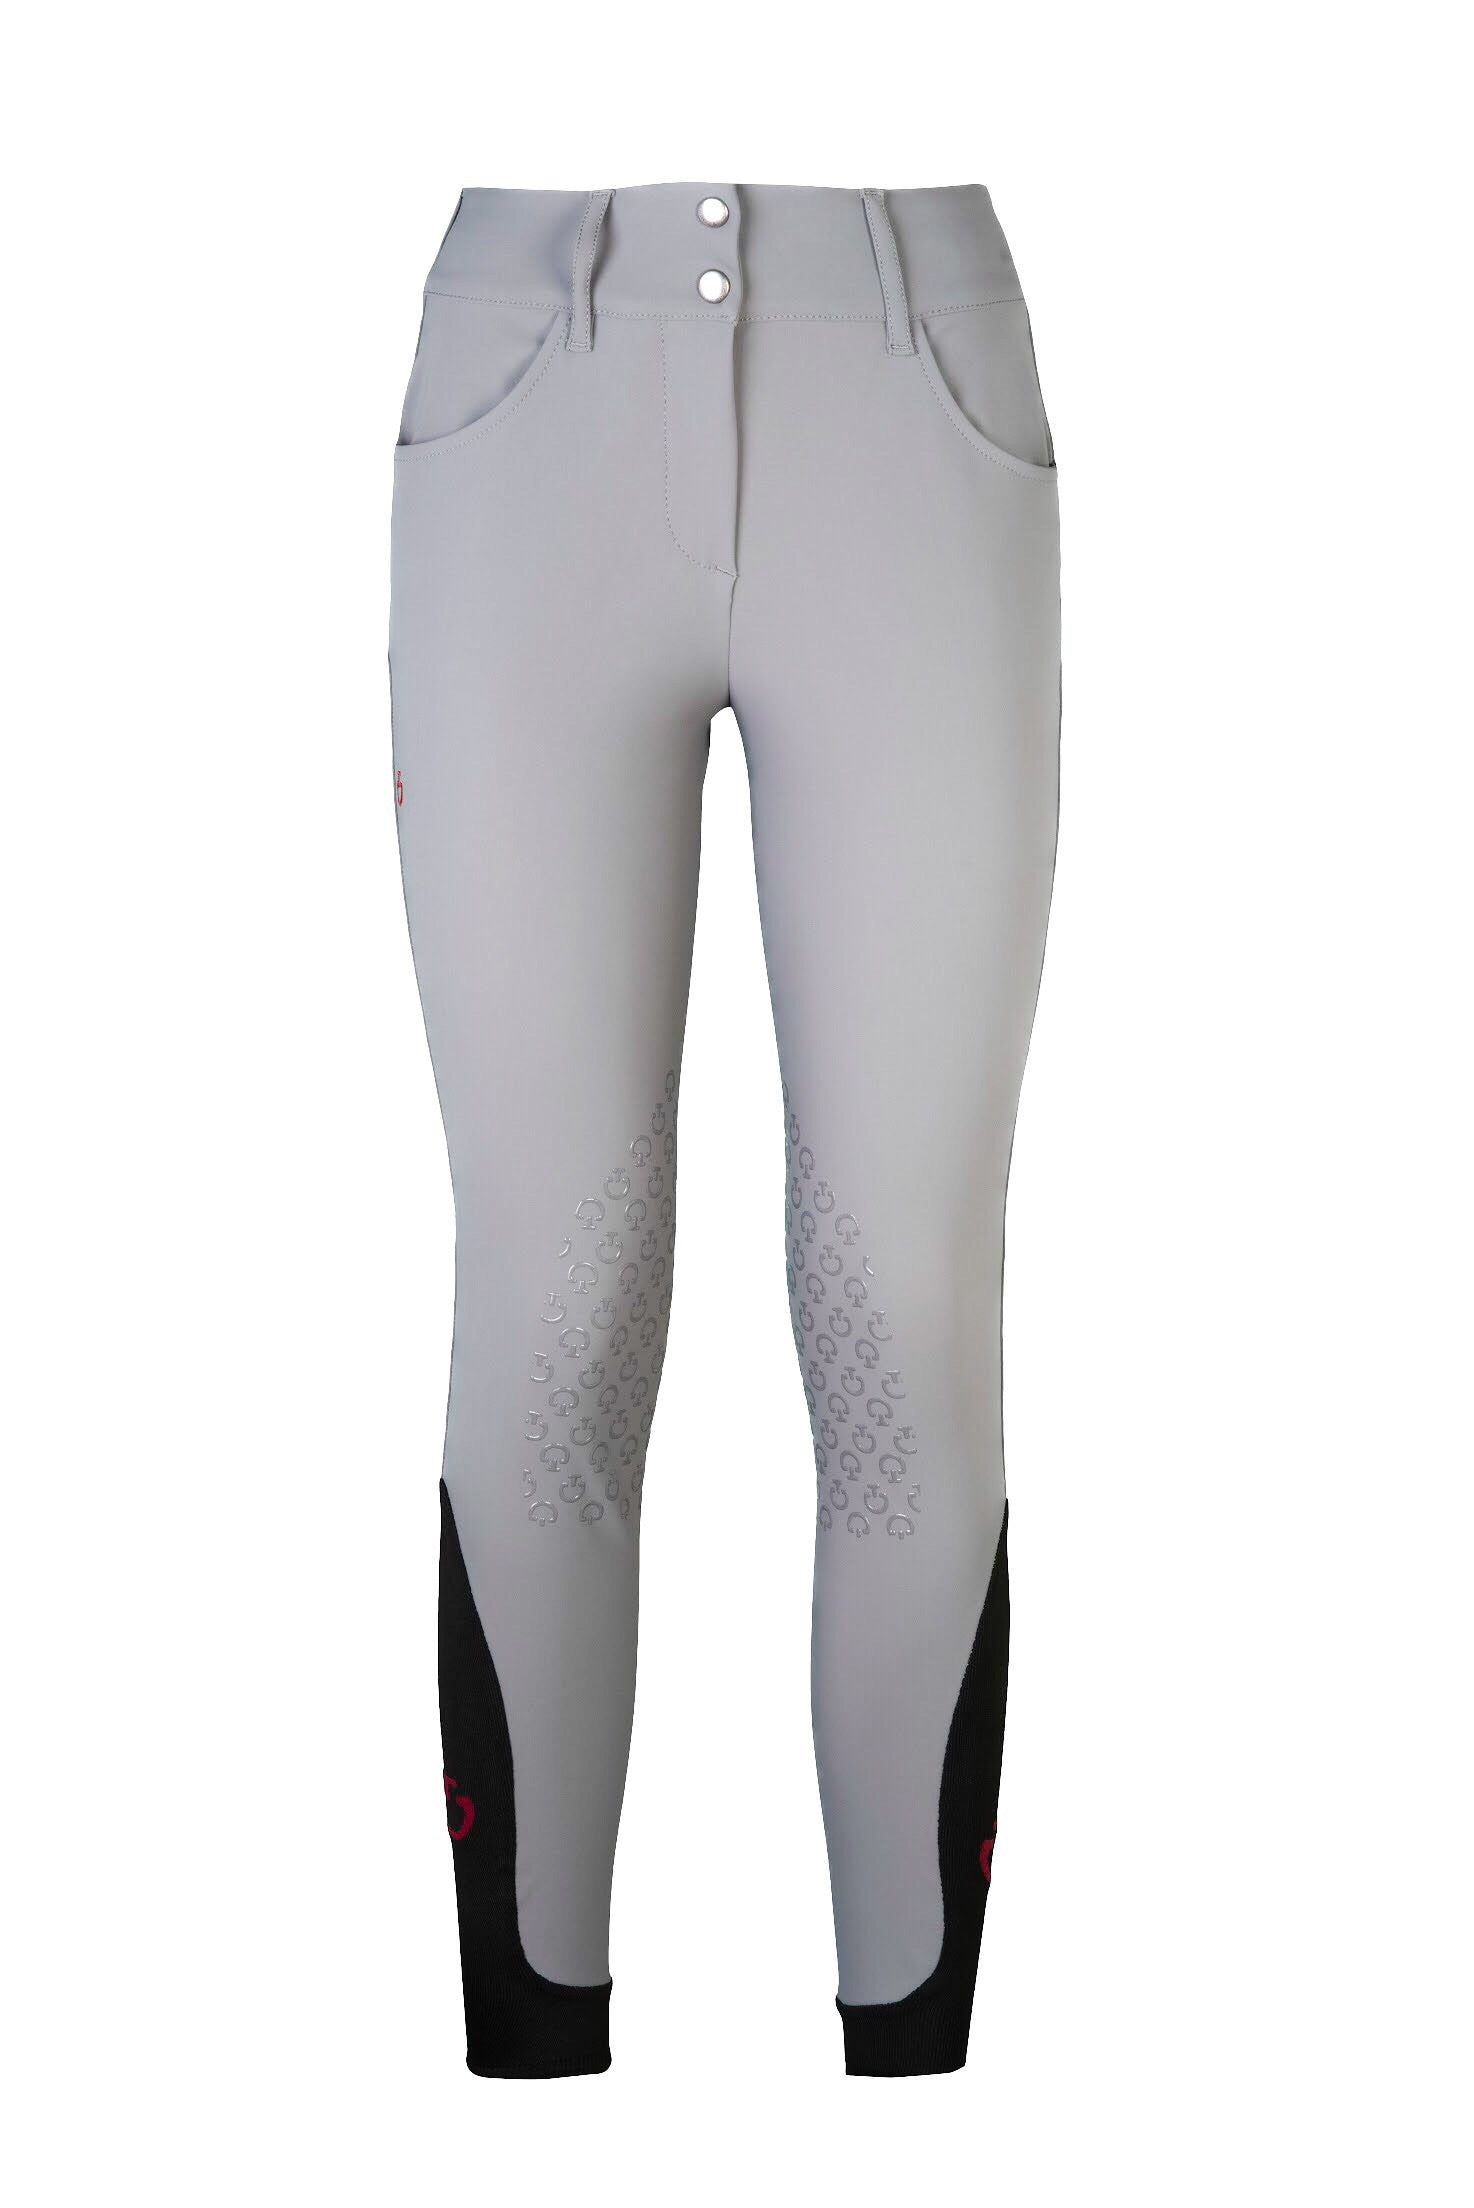 Cavalleria Toscana American Breeches Light Grey 8100 - Luxe EQ